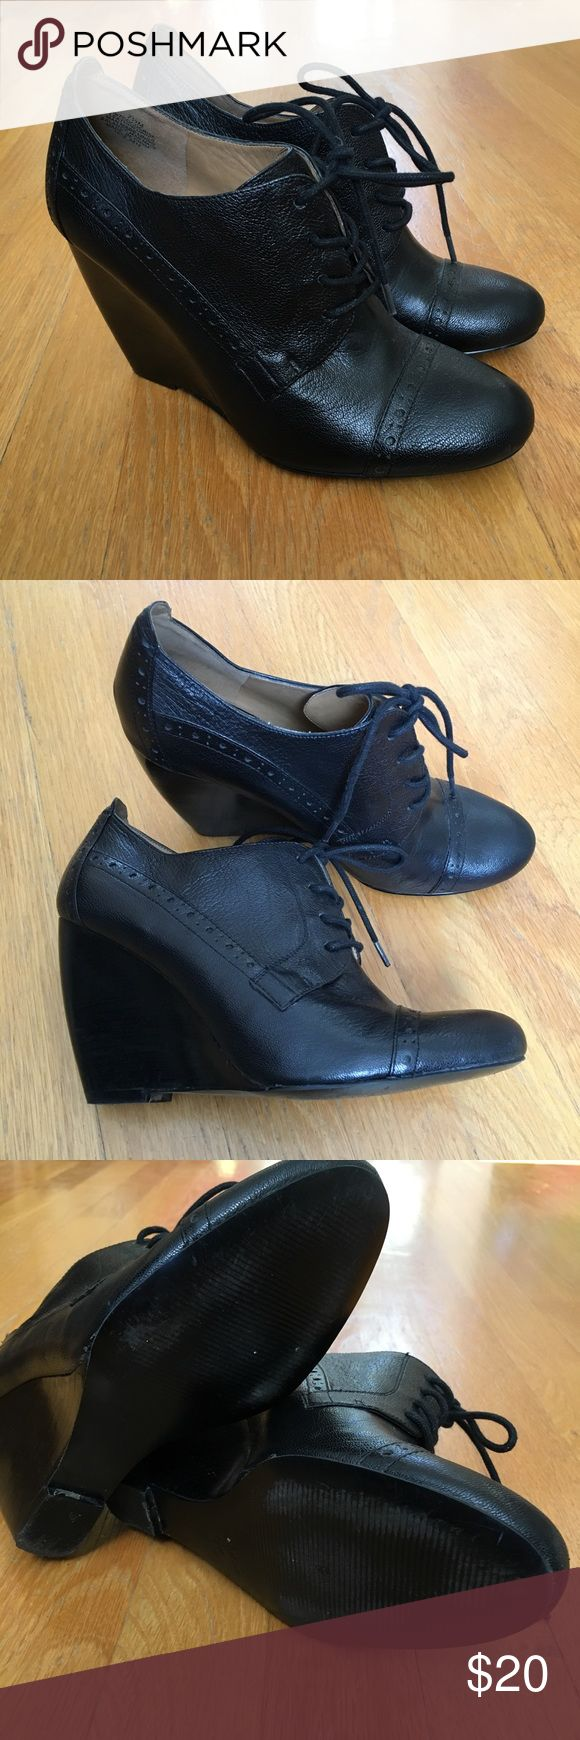 "Nine West Black Leather Oxford Wedges Gently worn lace-up black leather Oxford wedges. Heel height is 4"". Nine West Shoes Wedges"